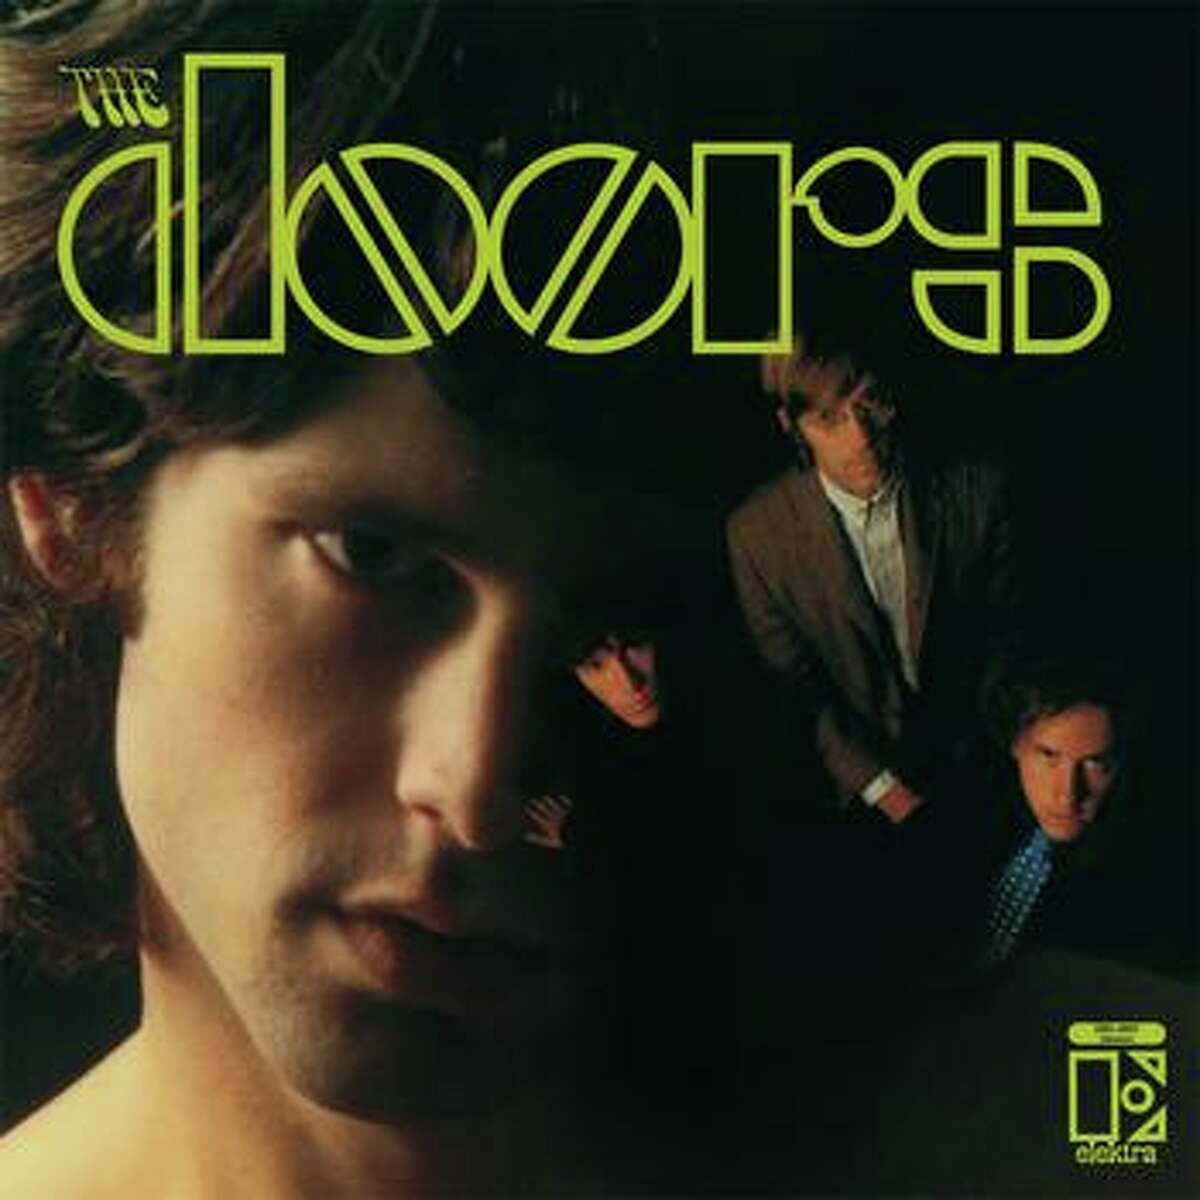 The Doors, 'The Doors' (1967): The first blast of Jim Morrison's cosmic poetry and the band's organ-driven dark soul, as manifested in the eternally spooky love song,